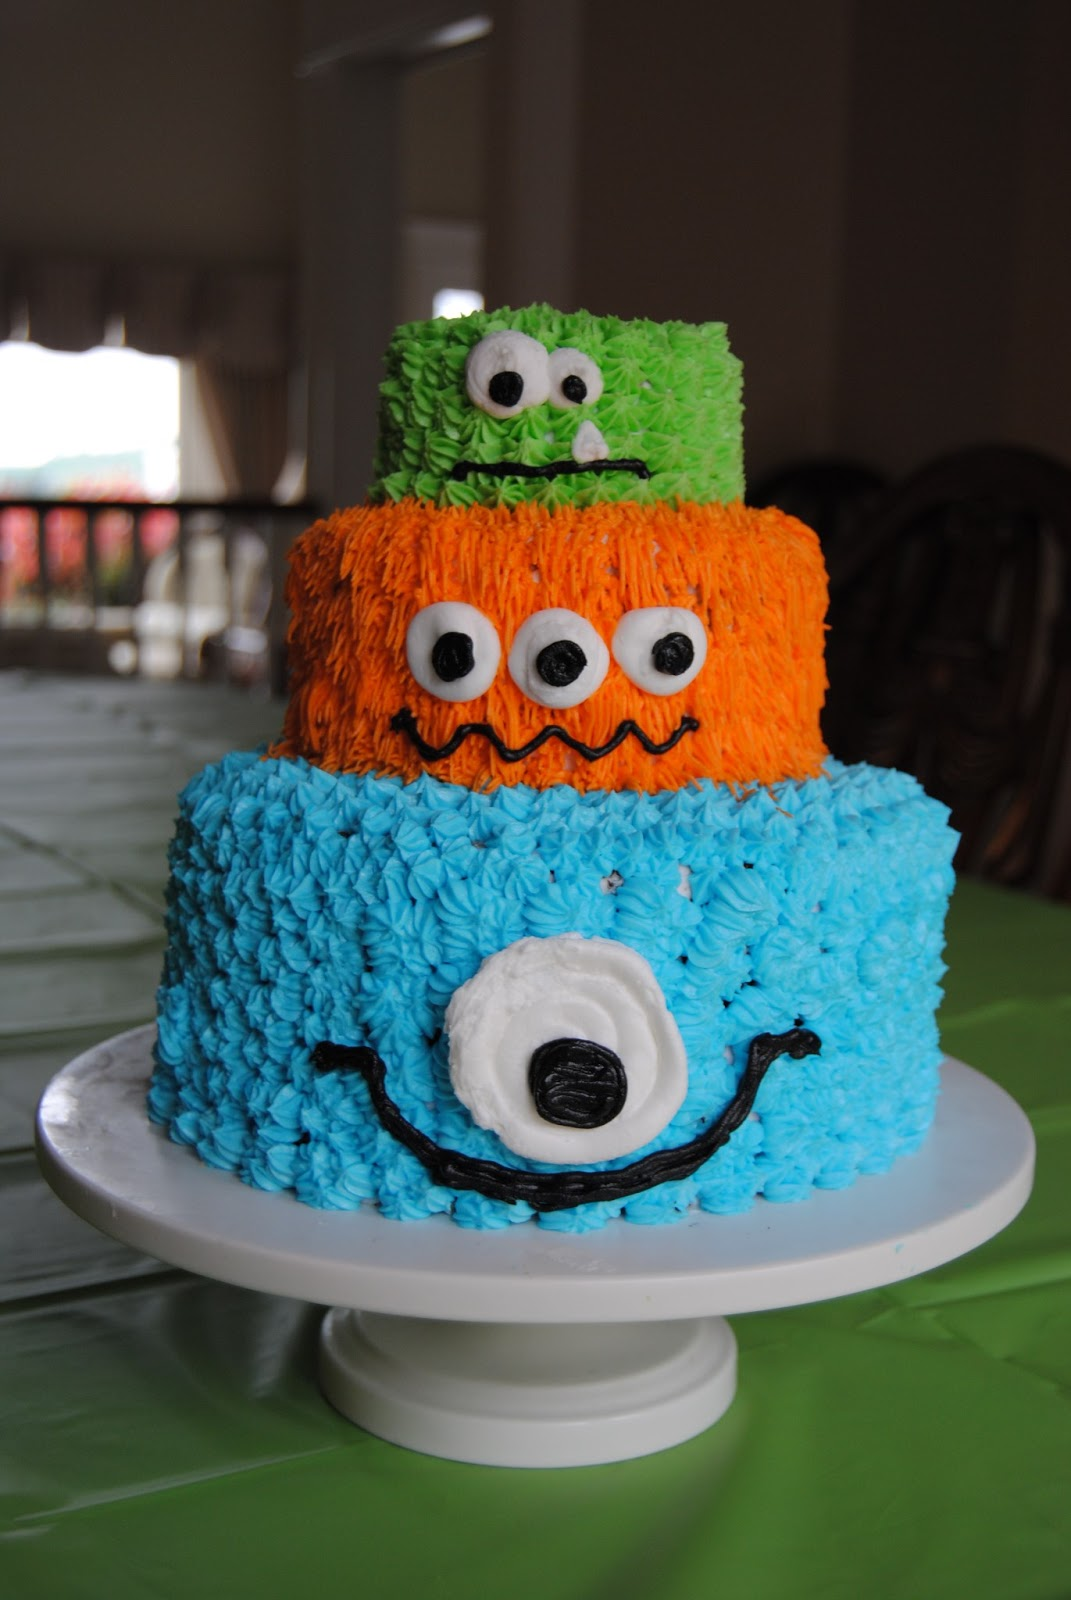 Monsters cake